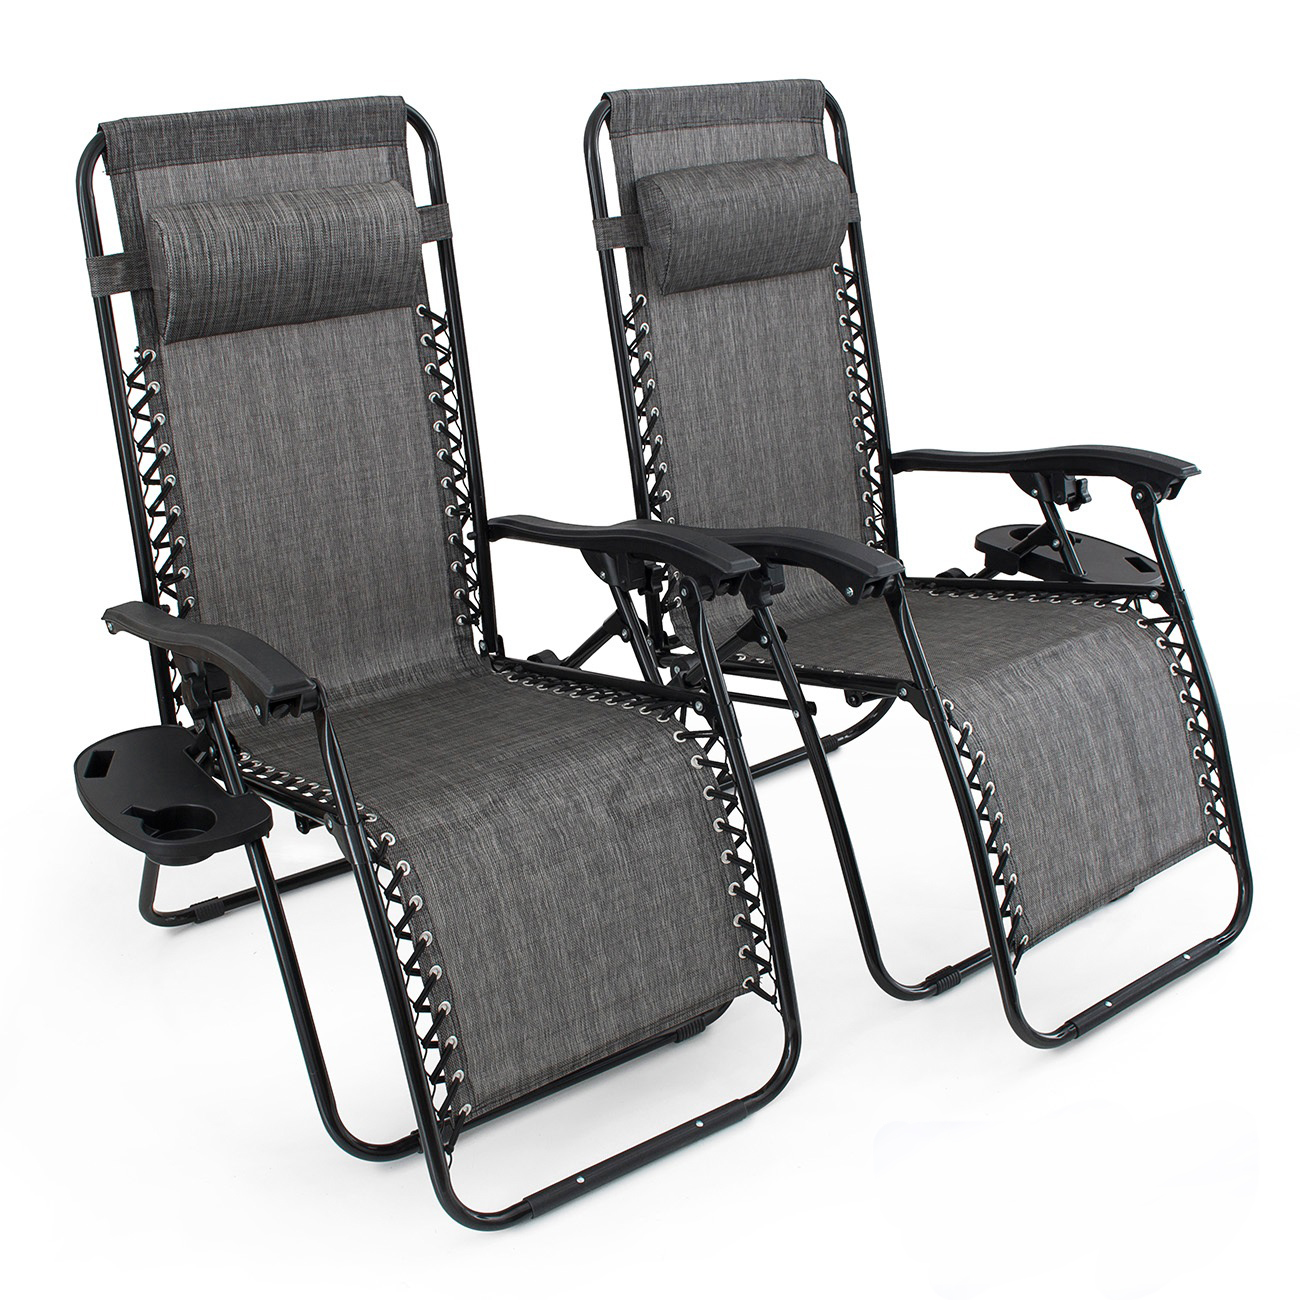 folding banana lounge chair covers for sale walmart belleze patio chairs zero gravity recliner tray